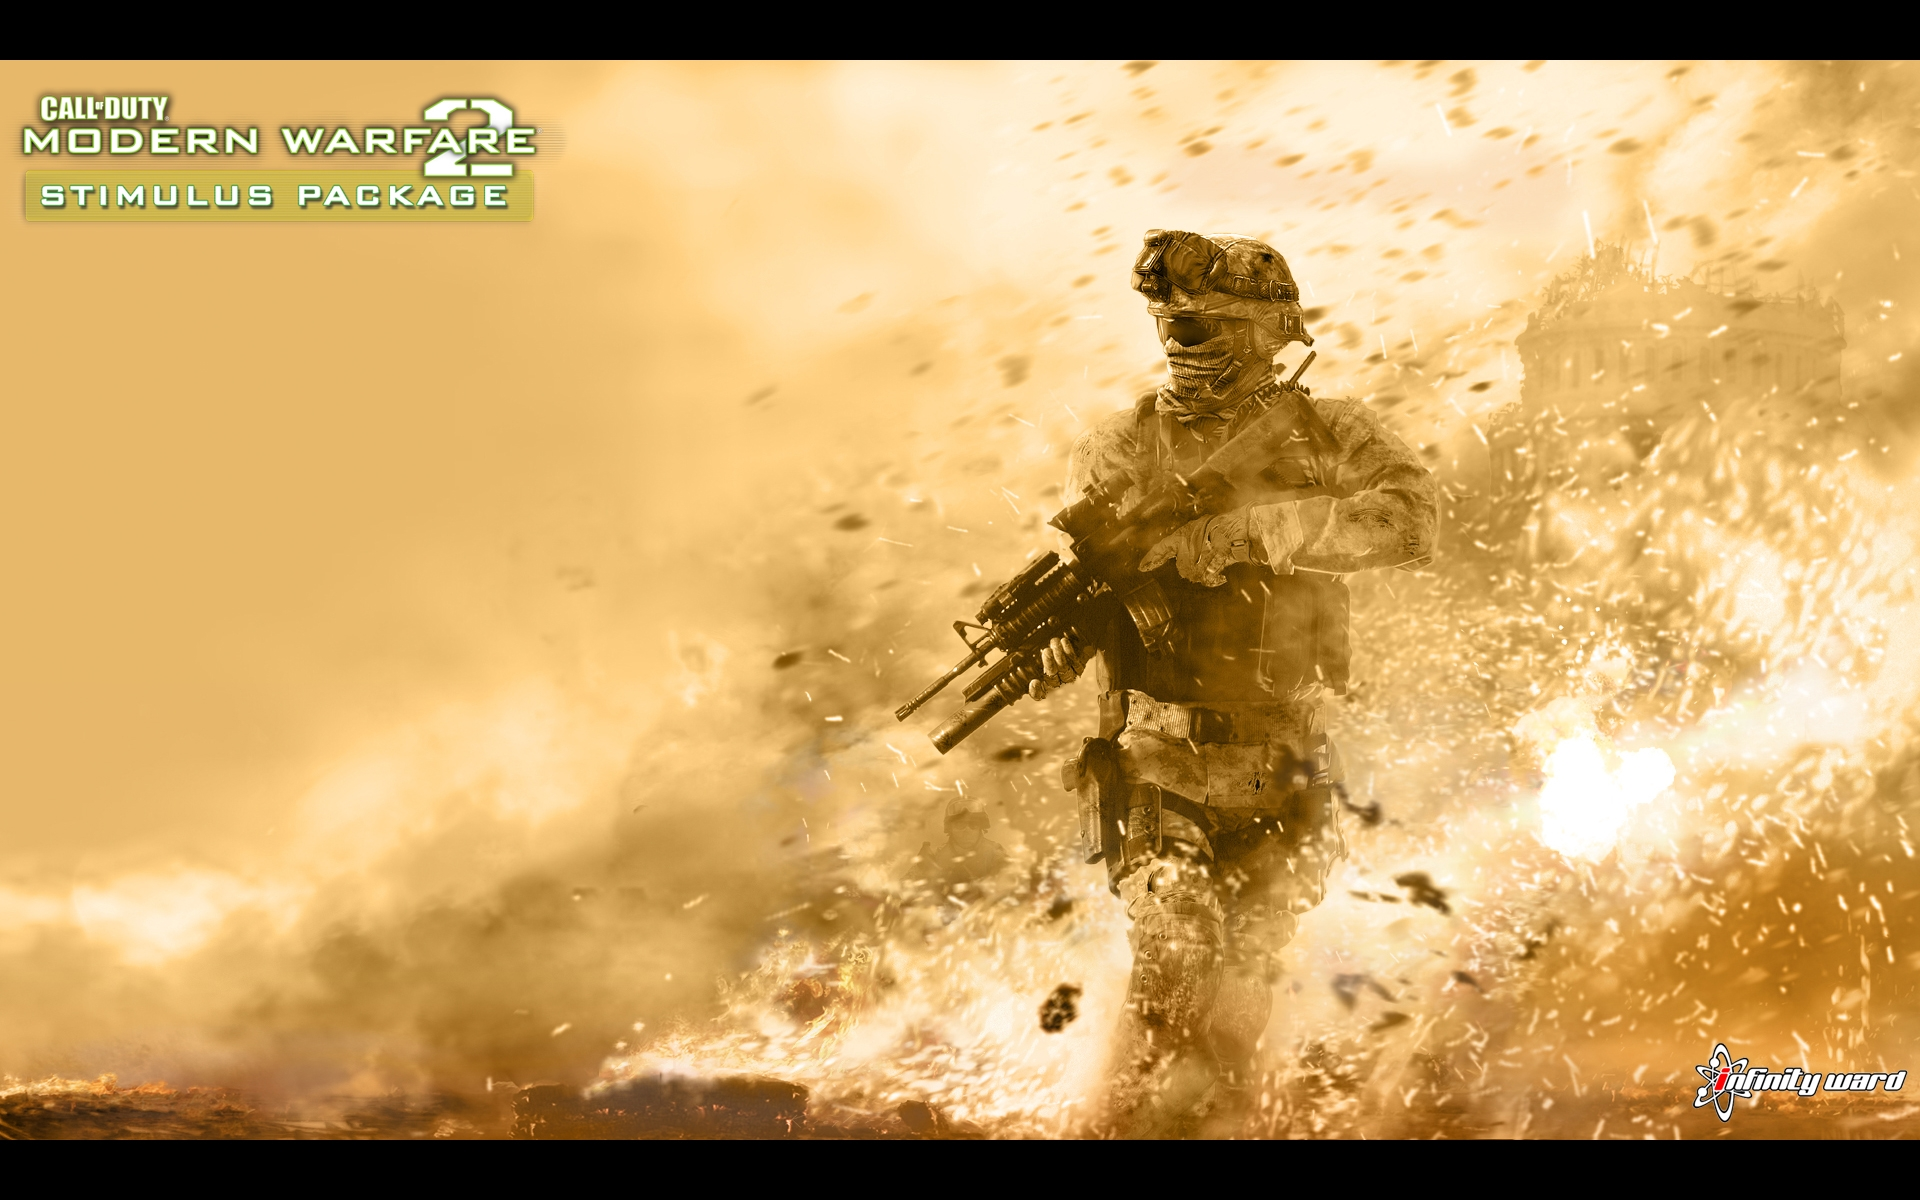 Wallpaper 10 Wallpaper From Call Of Duty Modern Warfare 2